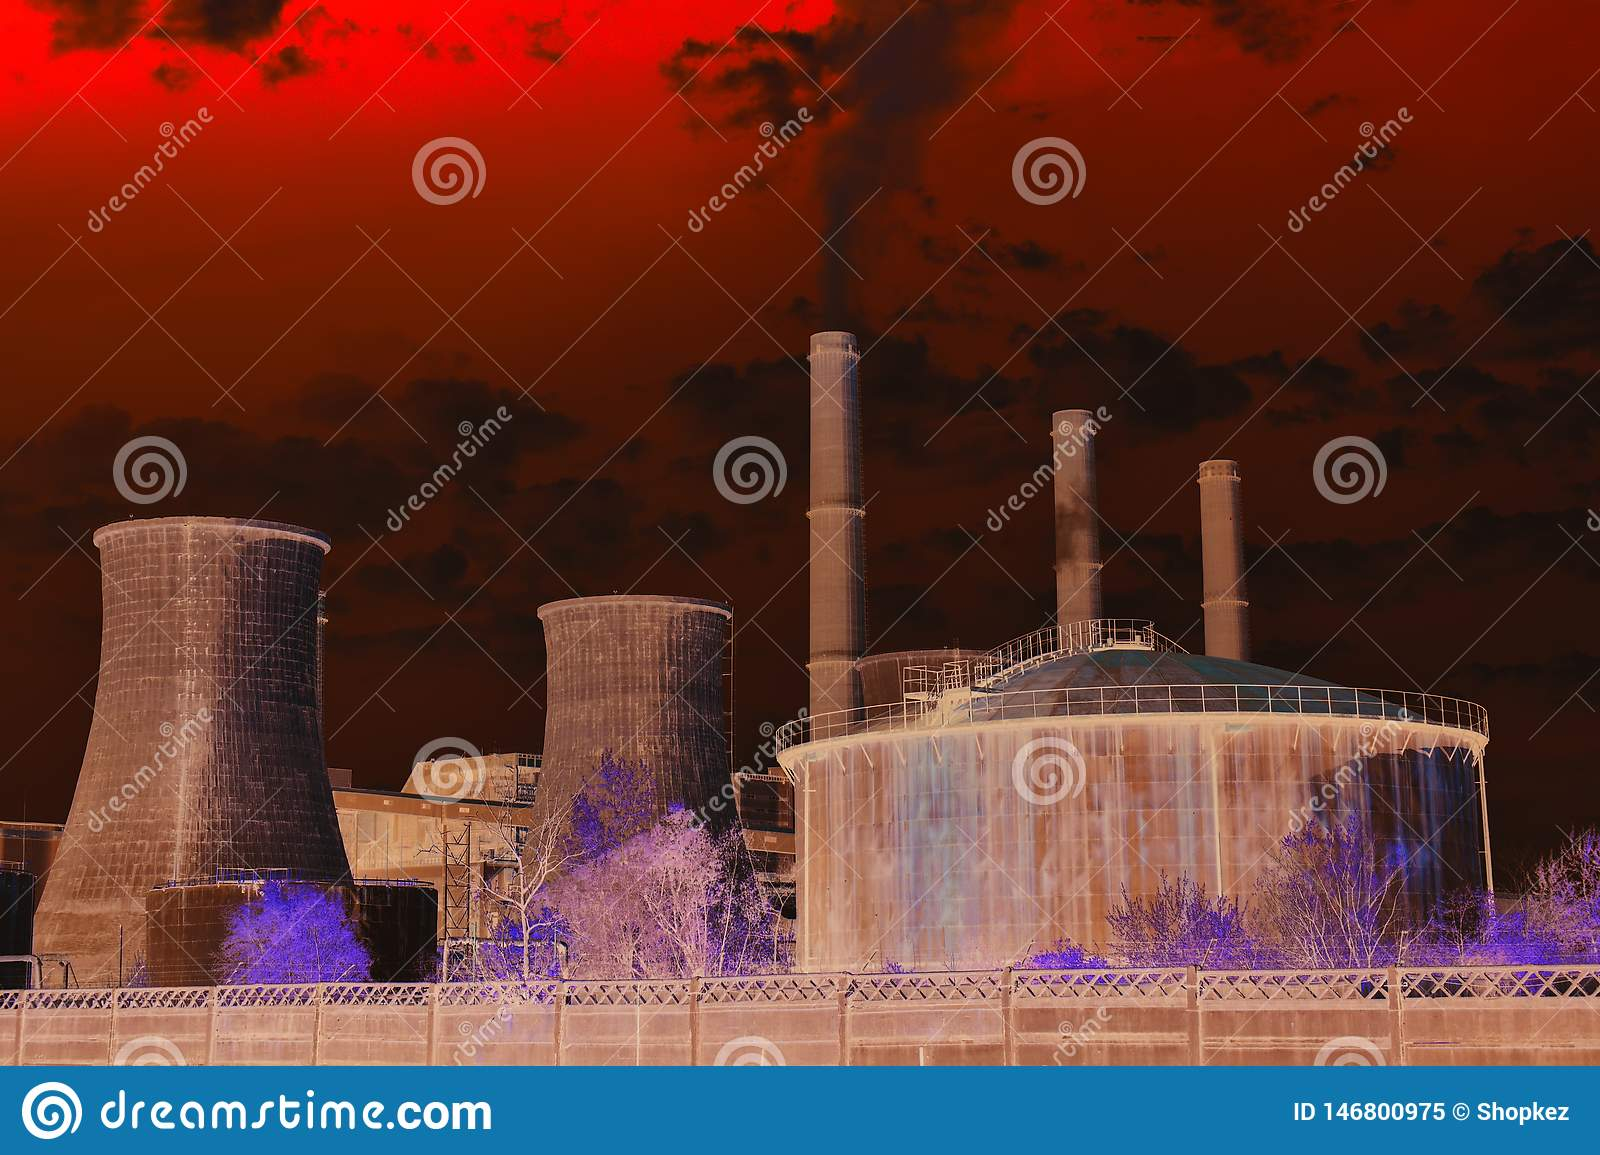 Apocalyptical view of the chemical plant. Pollution concept